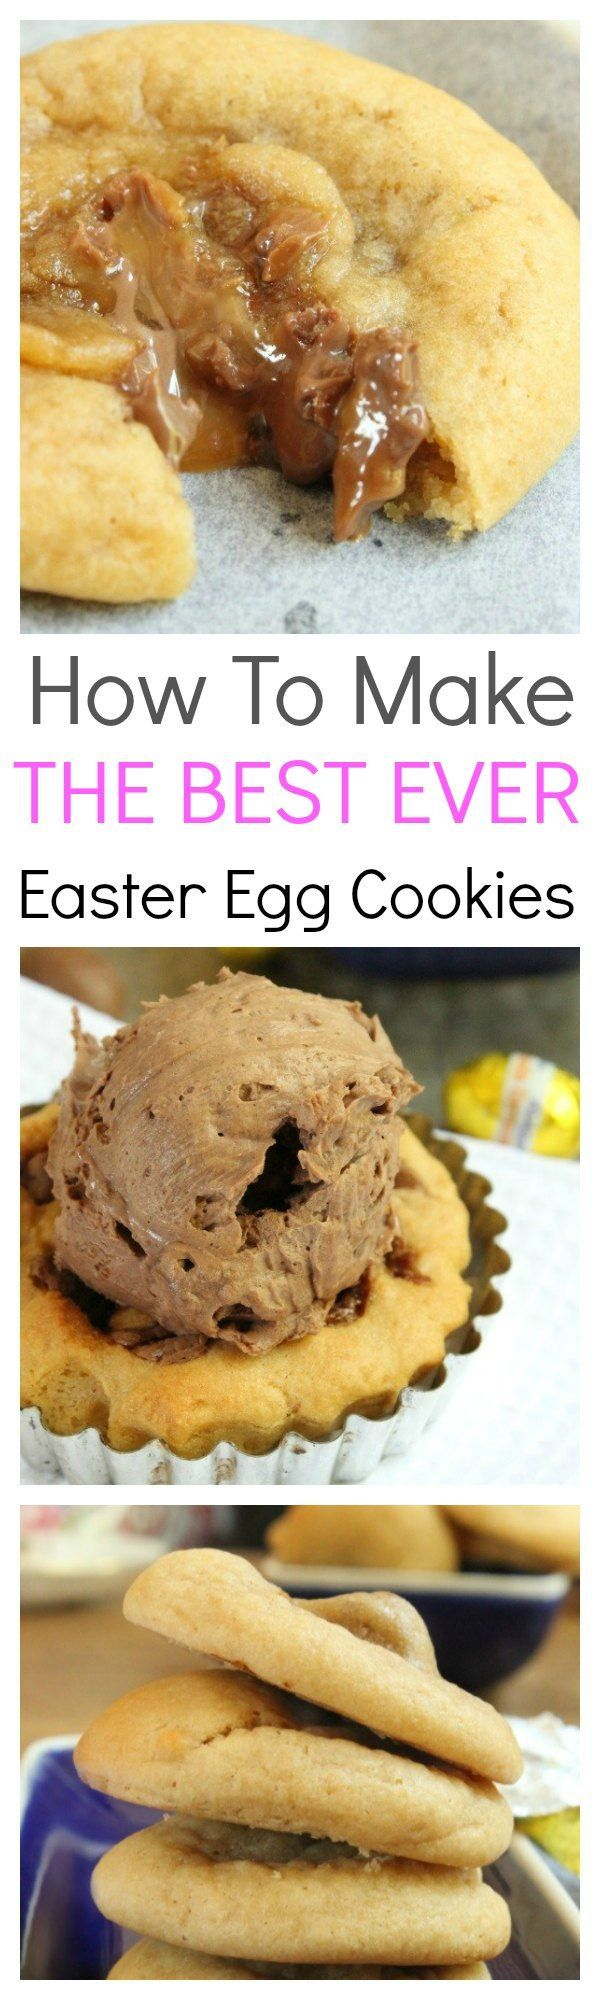 Gooey, Chewy Warm Easter Egg Cookies; served warm and cooked just right, these cookies are a sweet delight with a melted caramel chocolate center.  These cookies make an awesome dessert, afternoon snack and even a fantastic Easter gift. #Easter #Cookie #Cremeegg